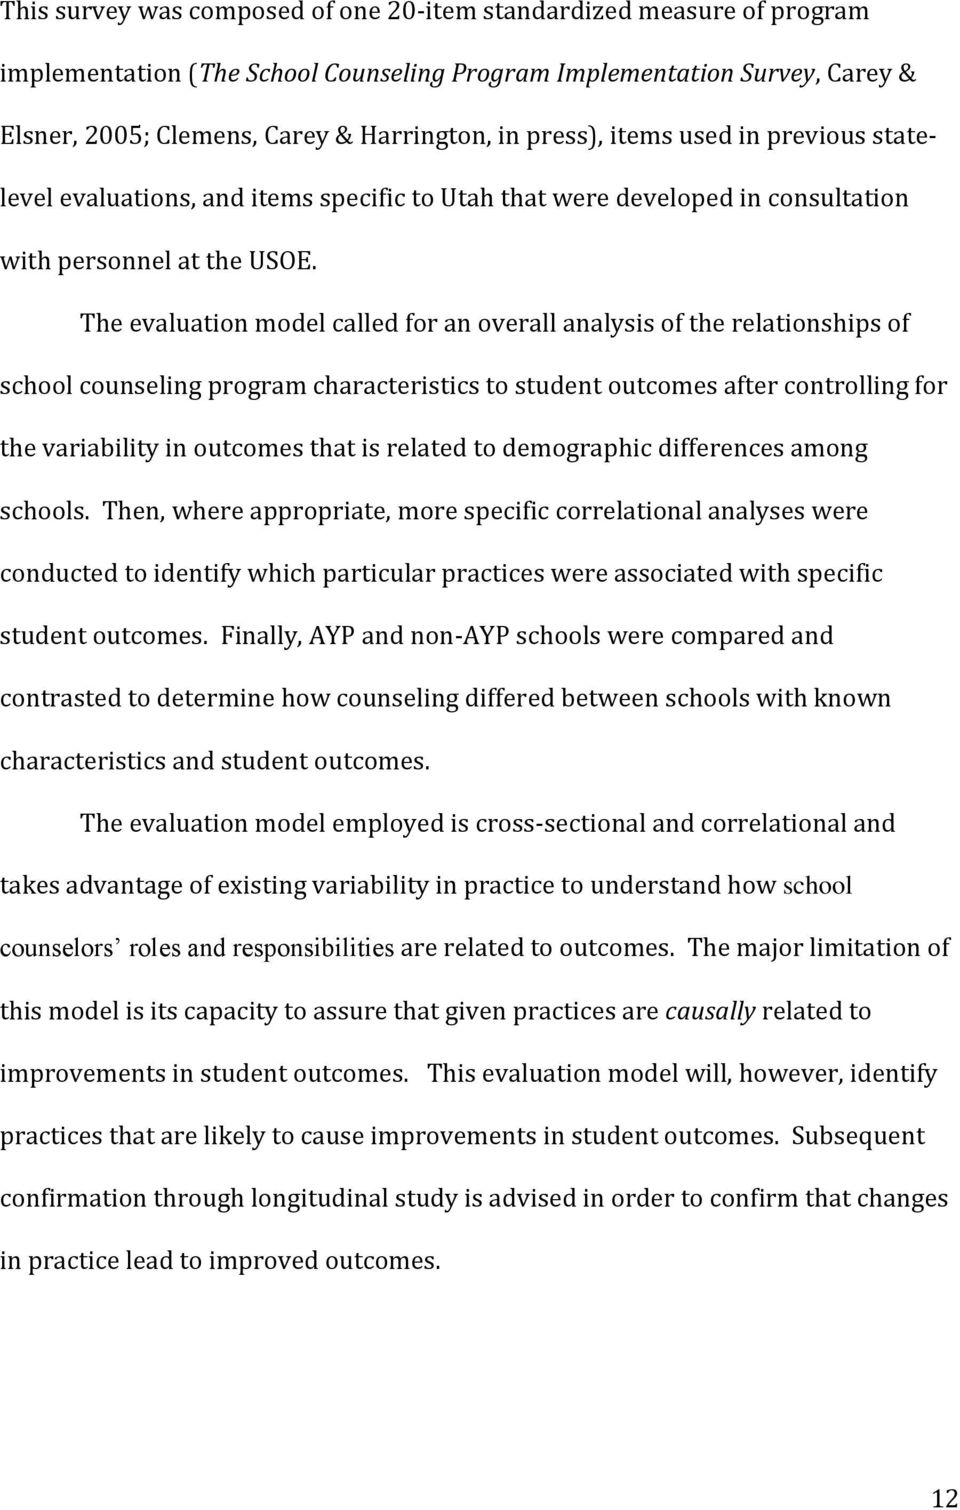 The evaluation model called for an overall analysis of the relationships of school counseling program characteristics to student outcomes after controlling for the variability in outcomes that is